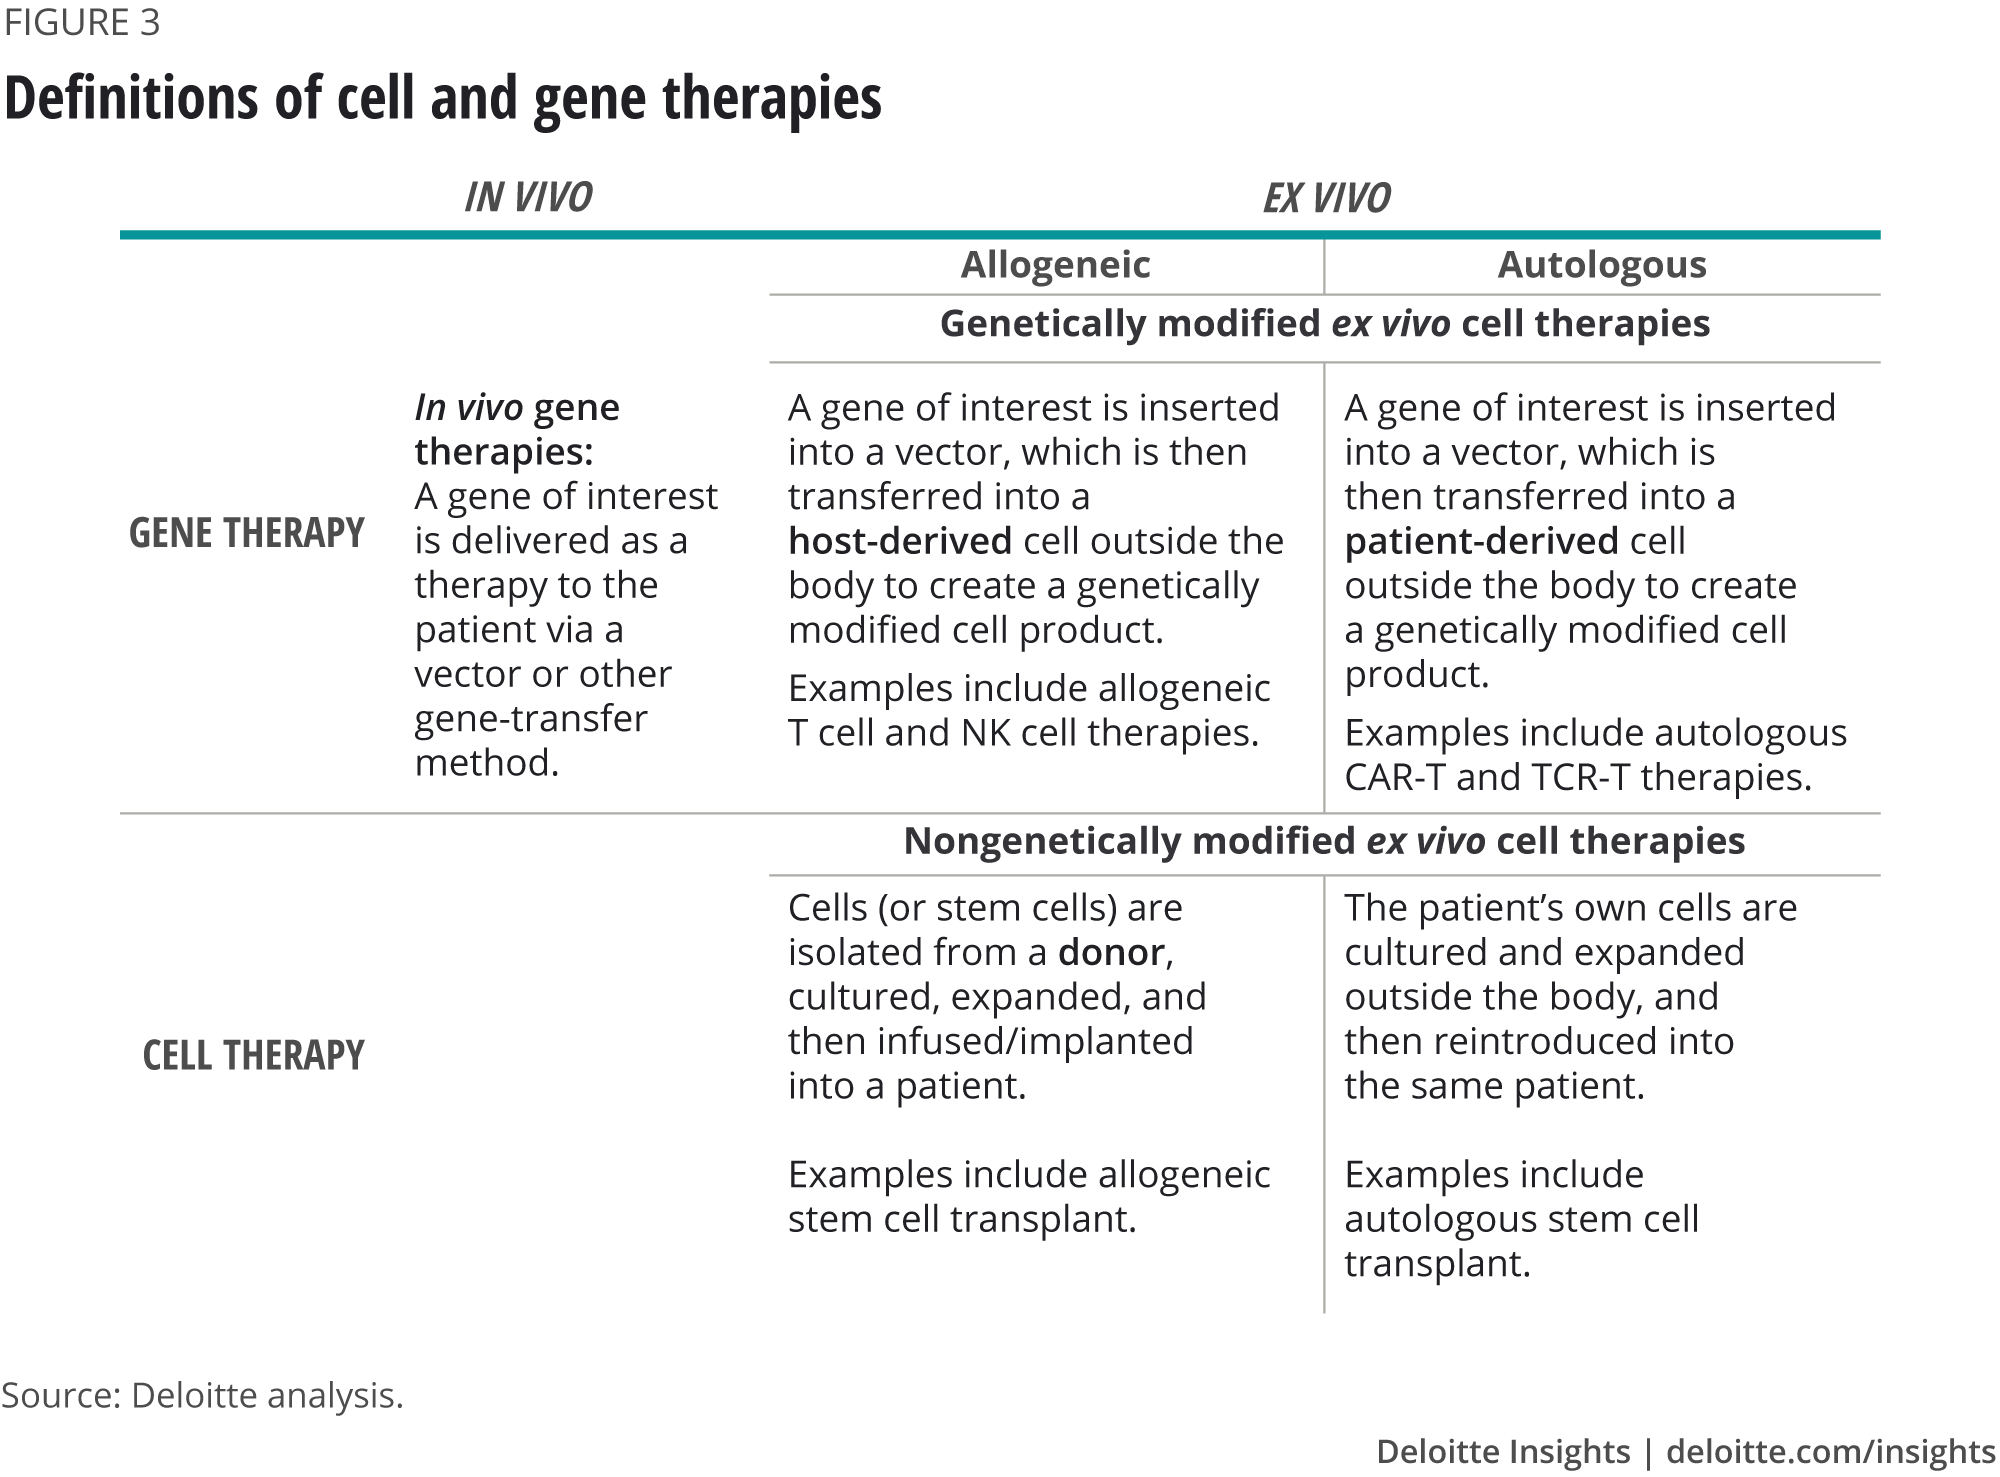 Definitions of cell and gene therapies